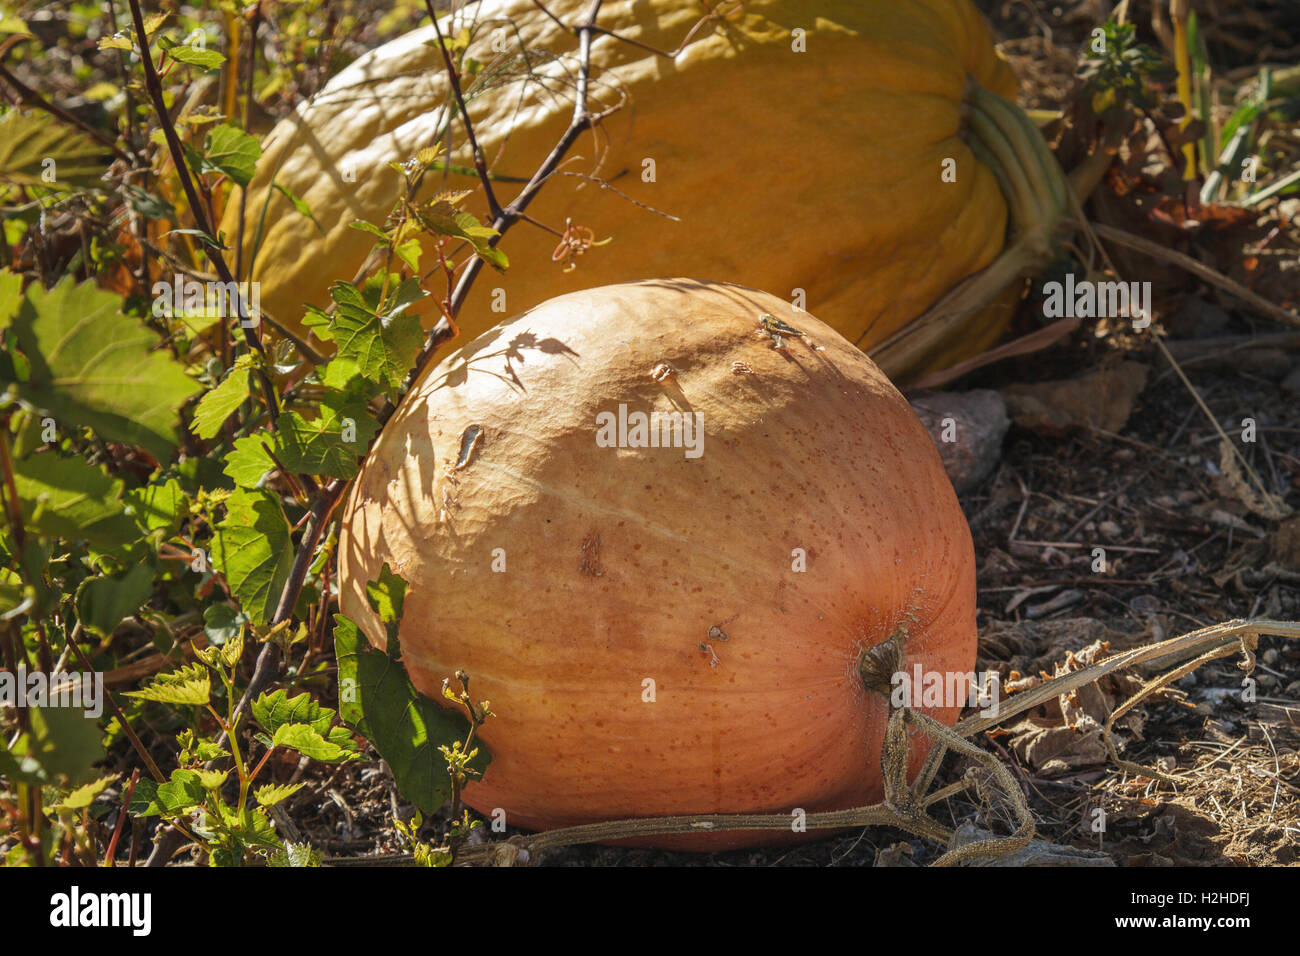 Pumpkin portraits - Large yellow and orange pumpkins growing in a Pumpkin Patch in Autumn, Portugal - Stock Image